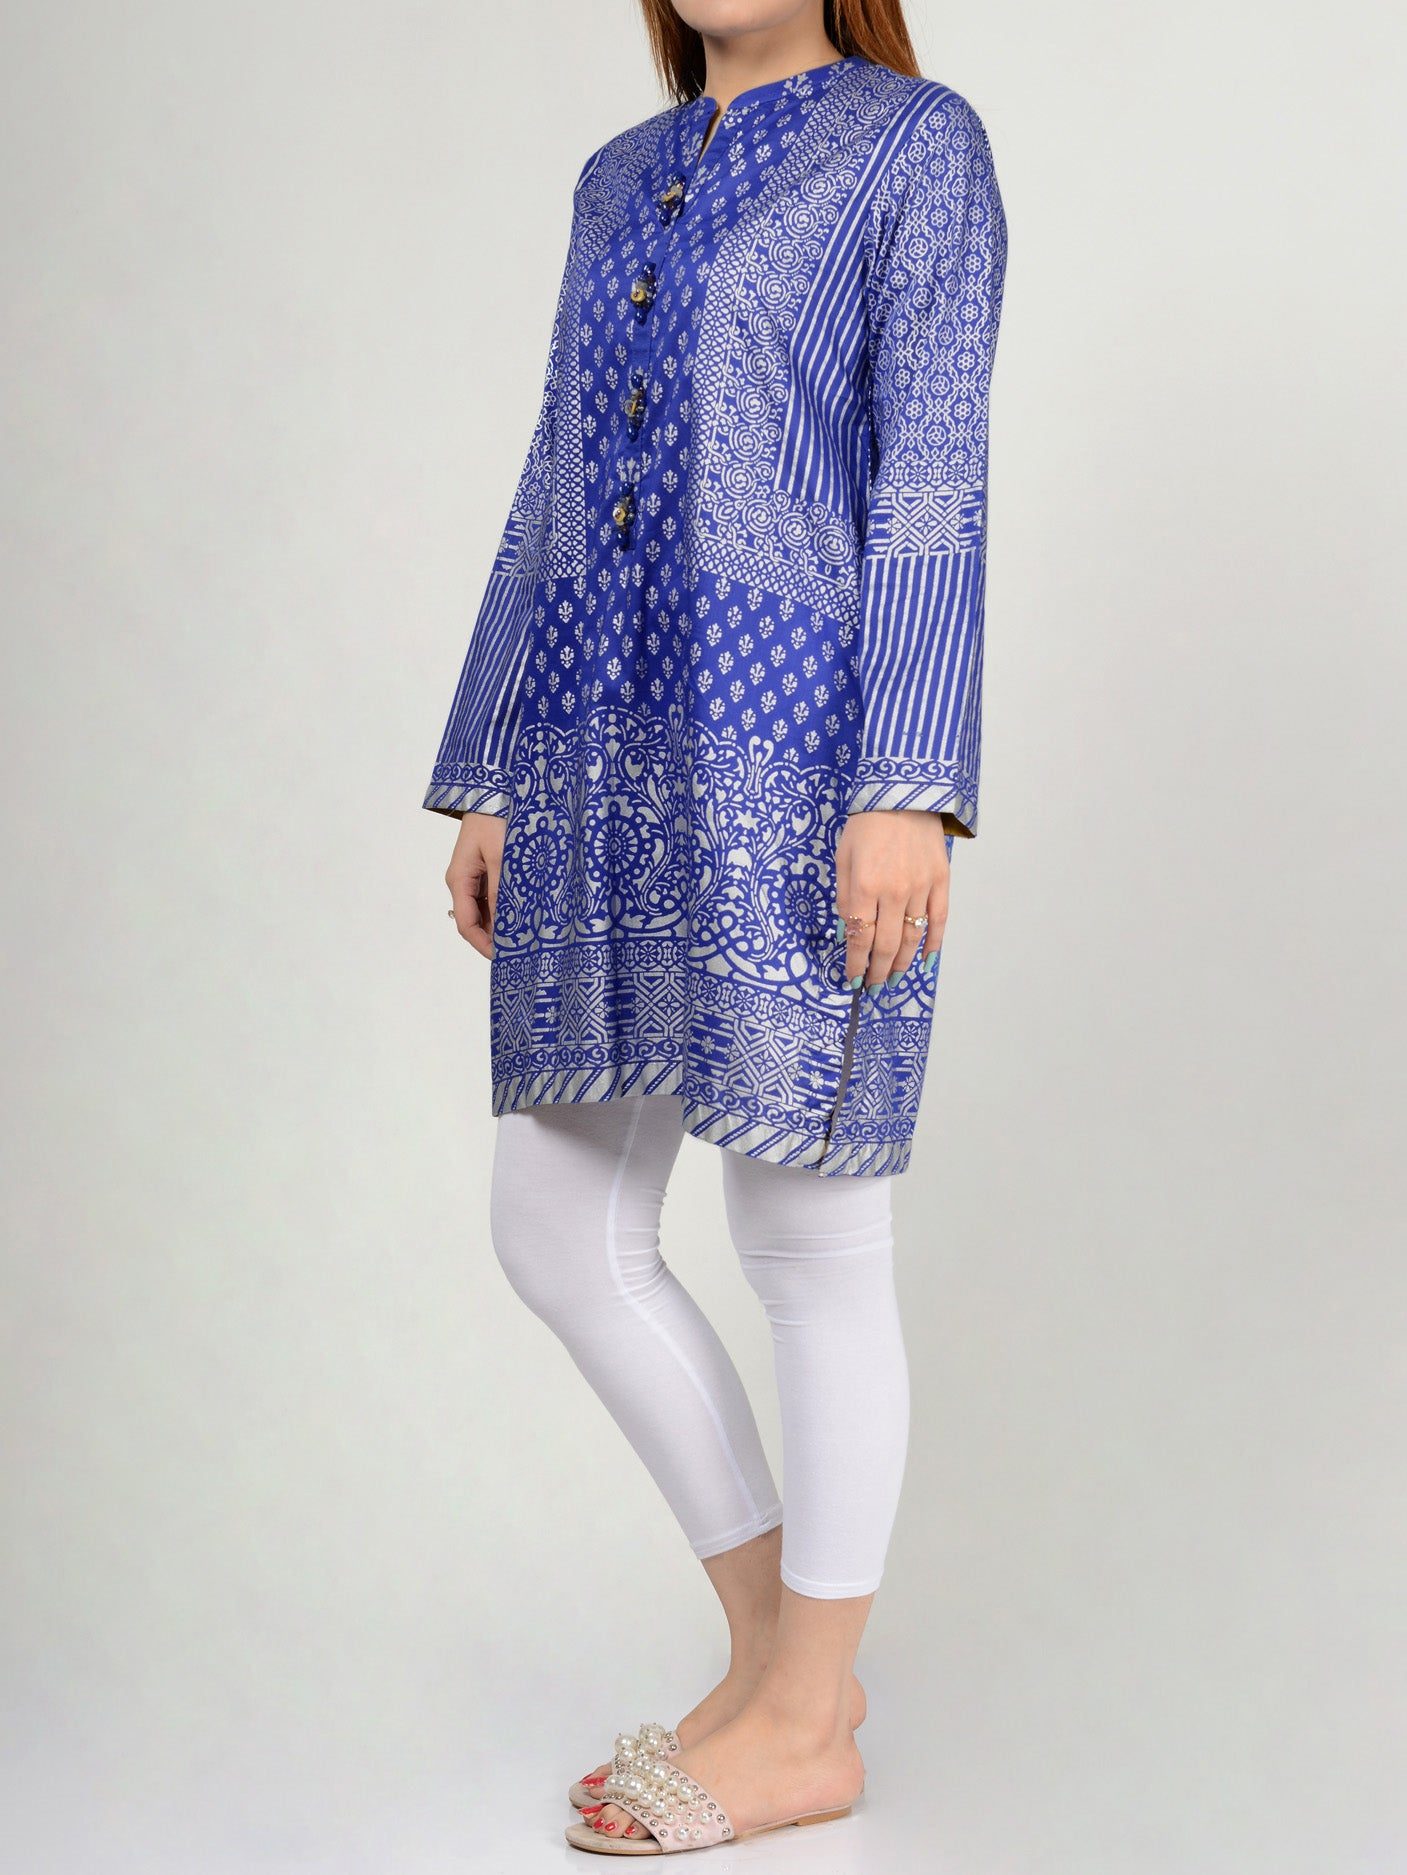 Printed Lawn Shirts Online P0122